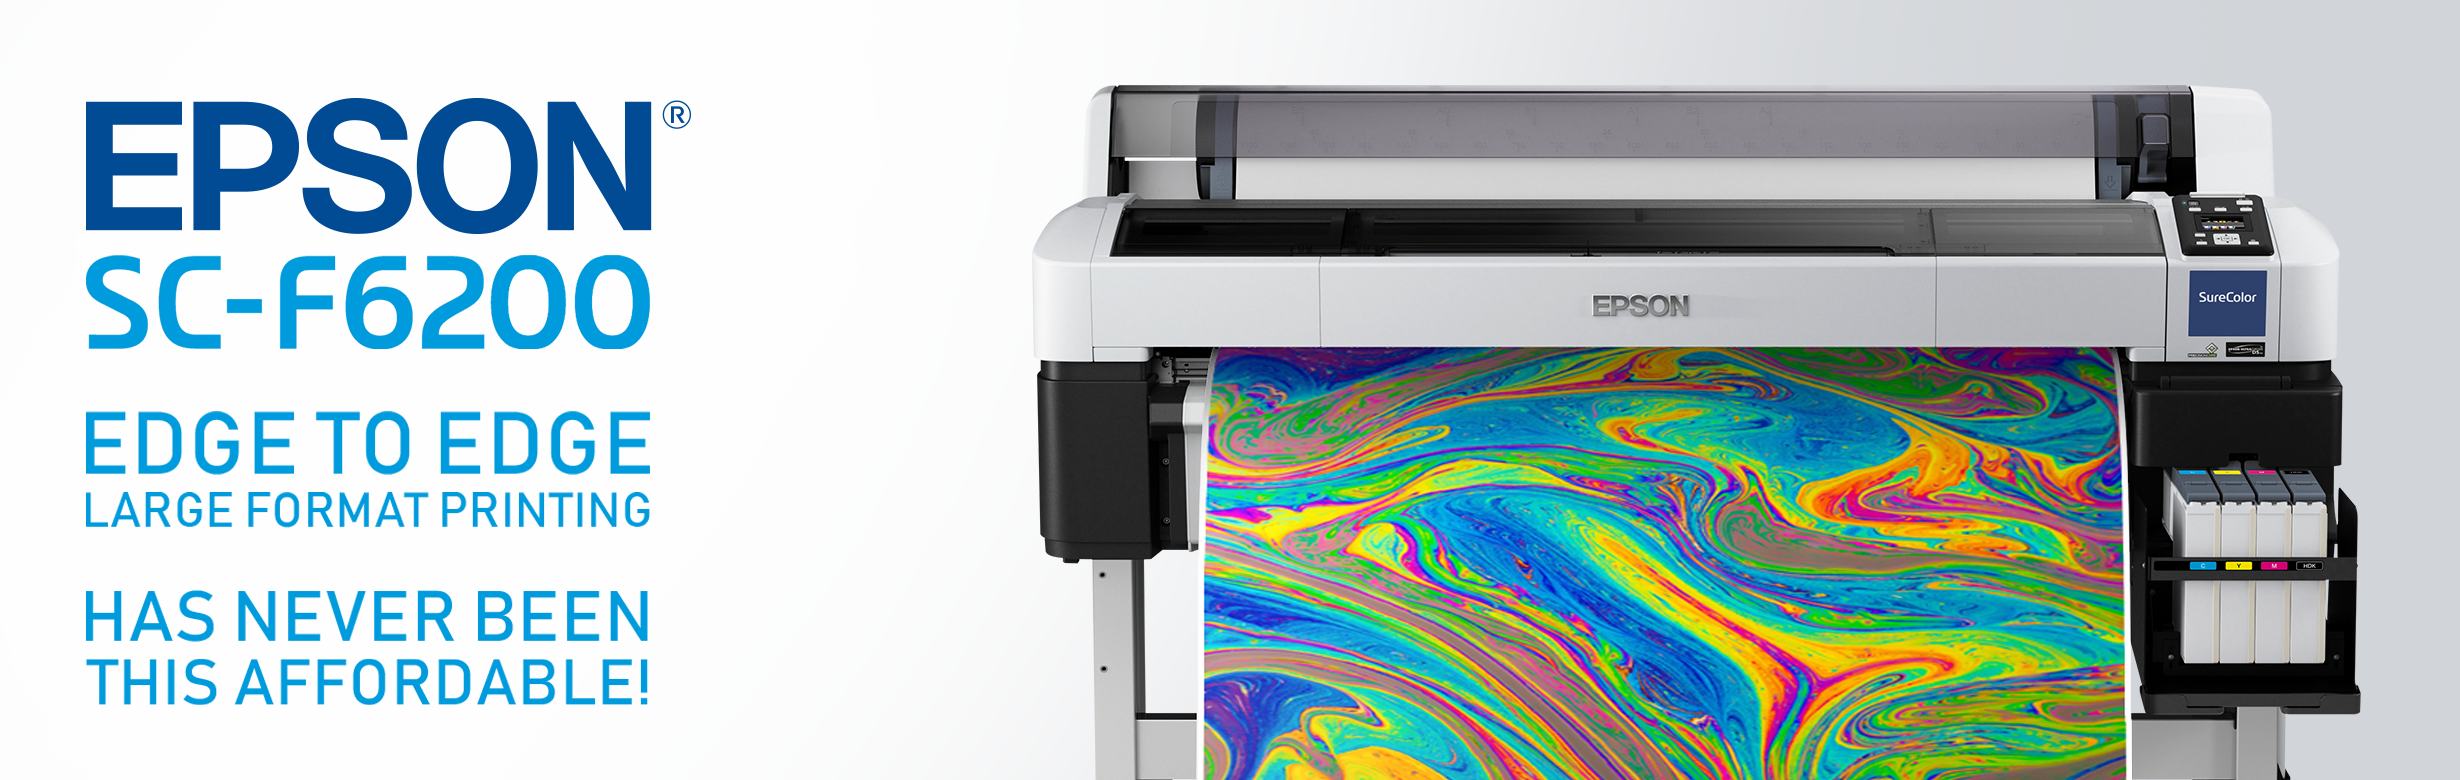 Large format printing with Epson SureColor SC-F6200